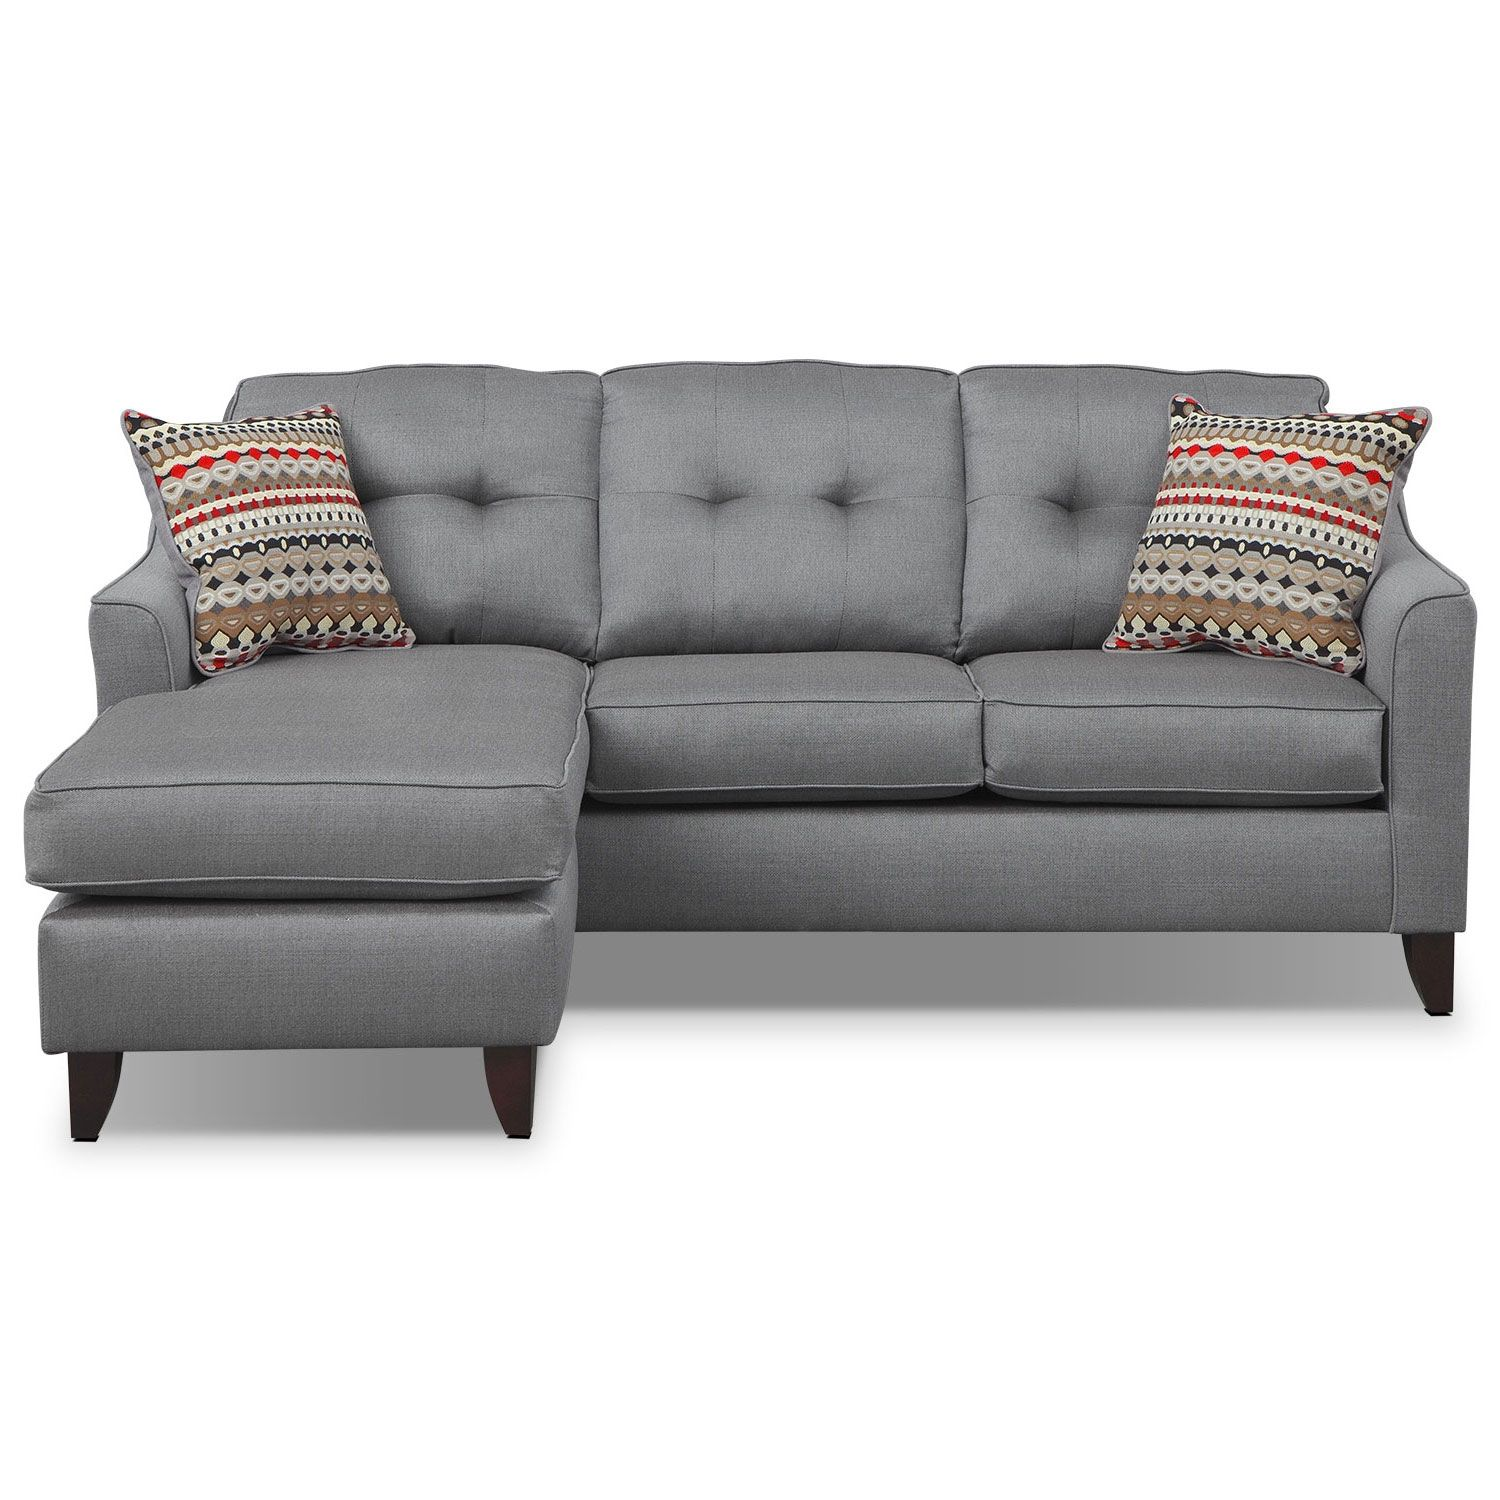 Simply Stylish Sit Back Relax And Sink Into The Comfortable Marco Chaise Sofa Upholstered Wi Sectional Sofa With Chaise Grey Chaise Sofa Grey Sectional Sofa